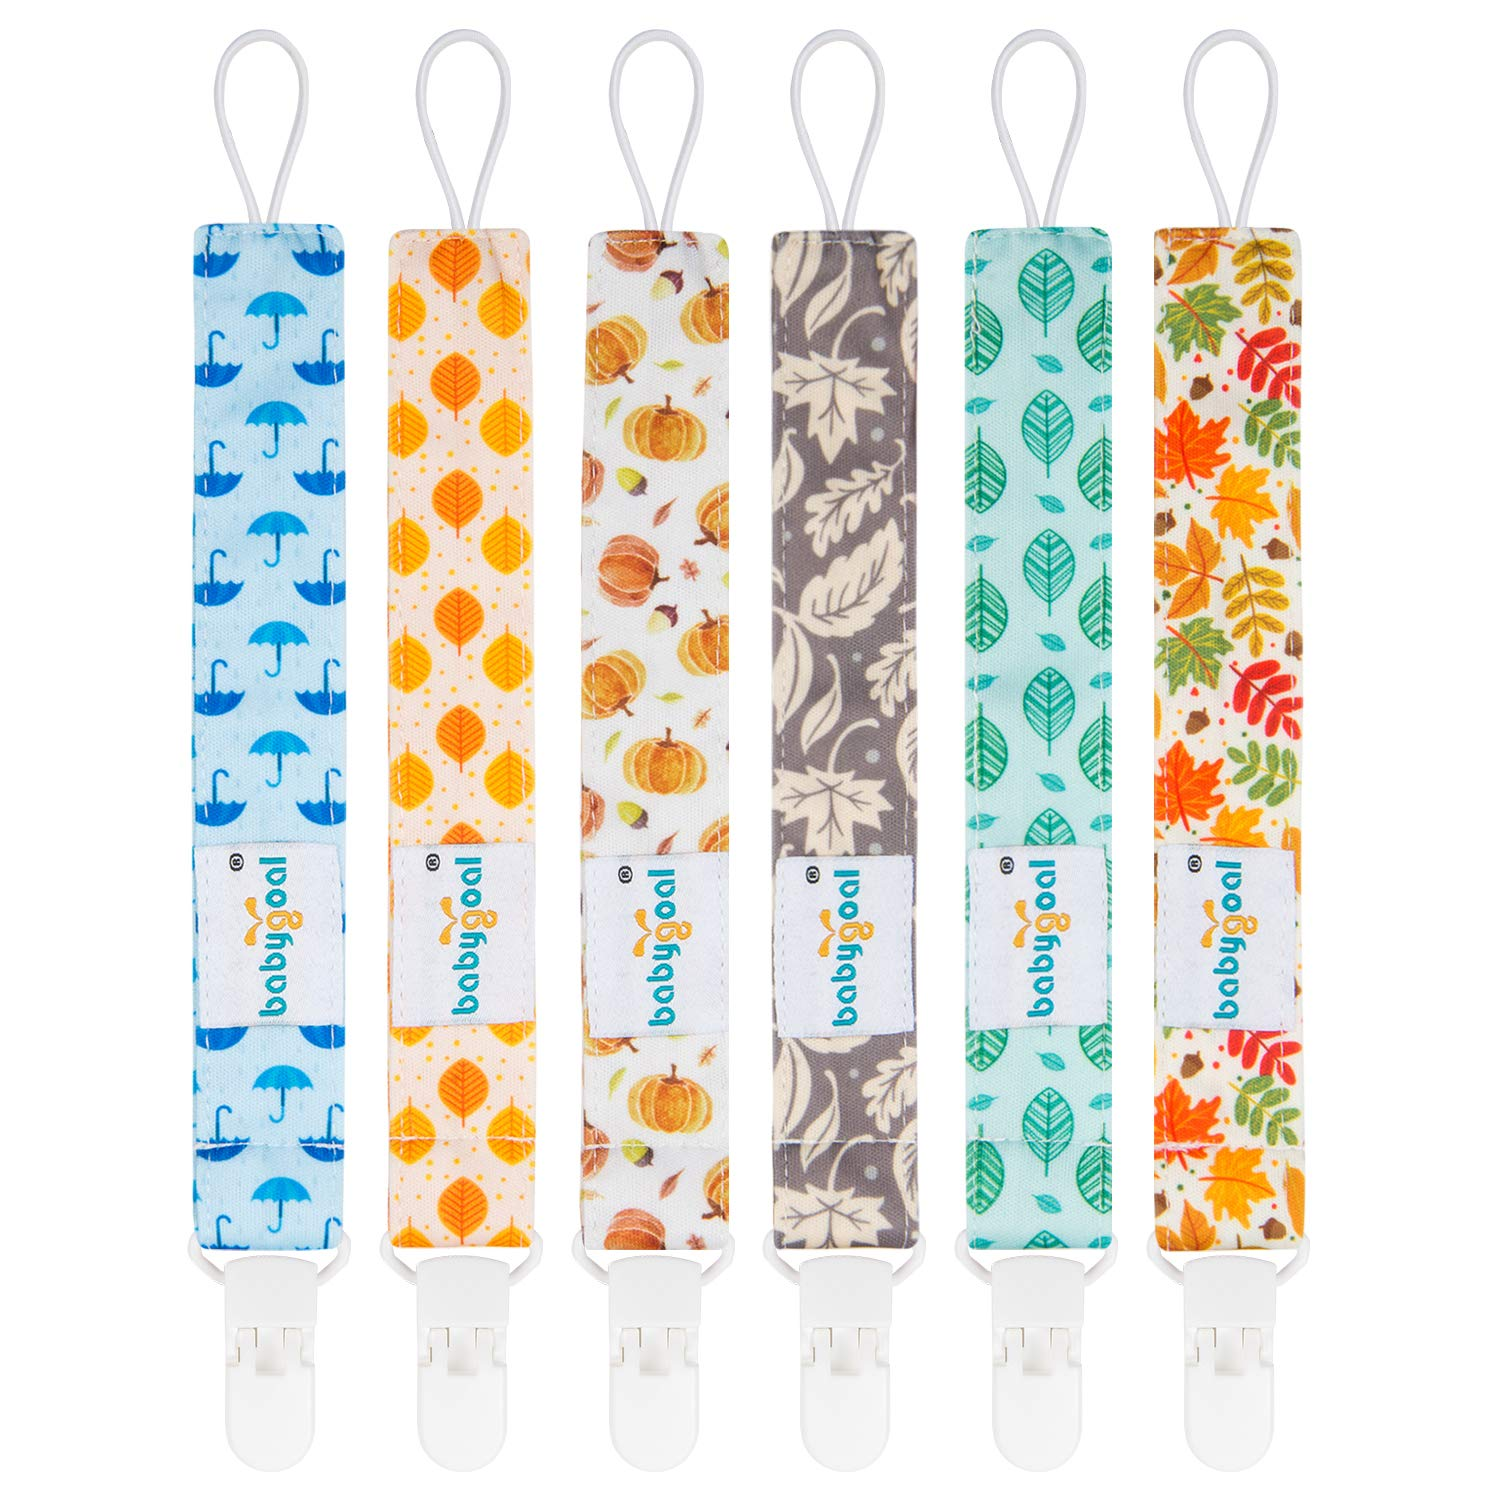 Babygoal Pacifier Clips, 6 Pack Pacifier Holder for Boys and Girls Fits Most Pacifier Styles &Teething Toys and Baby Shower Gift 6PS19